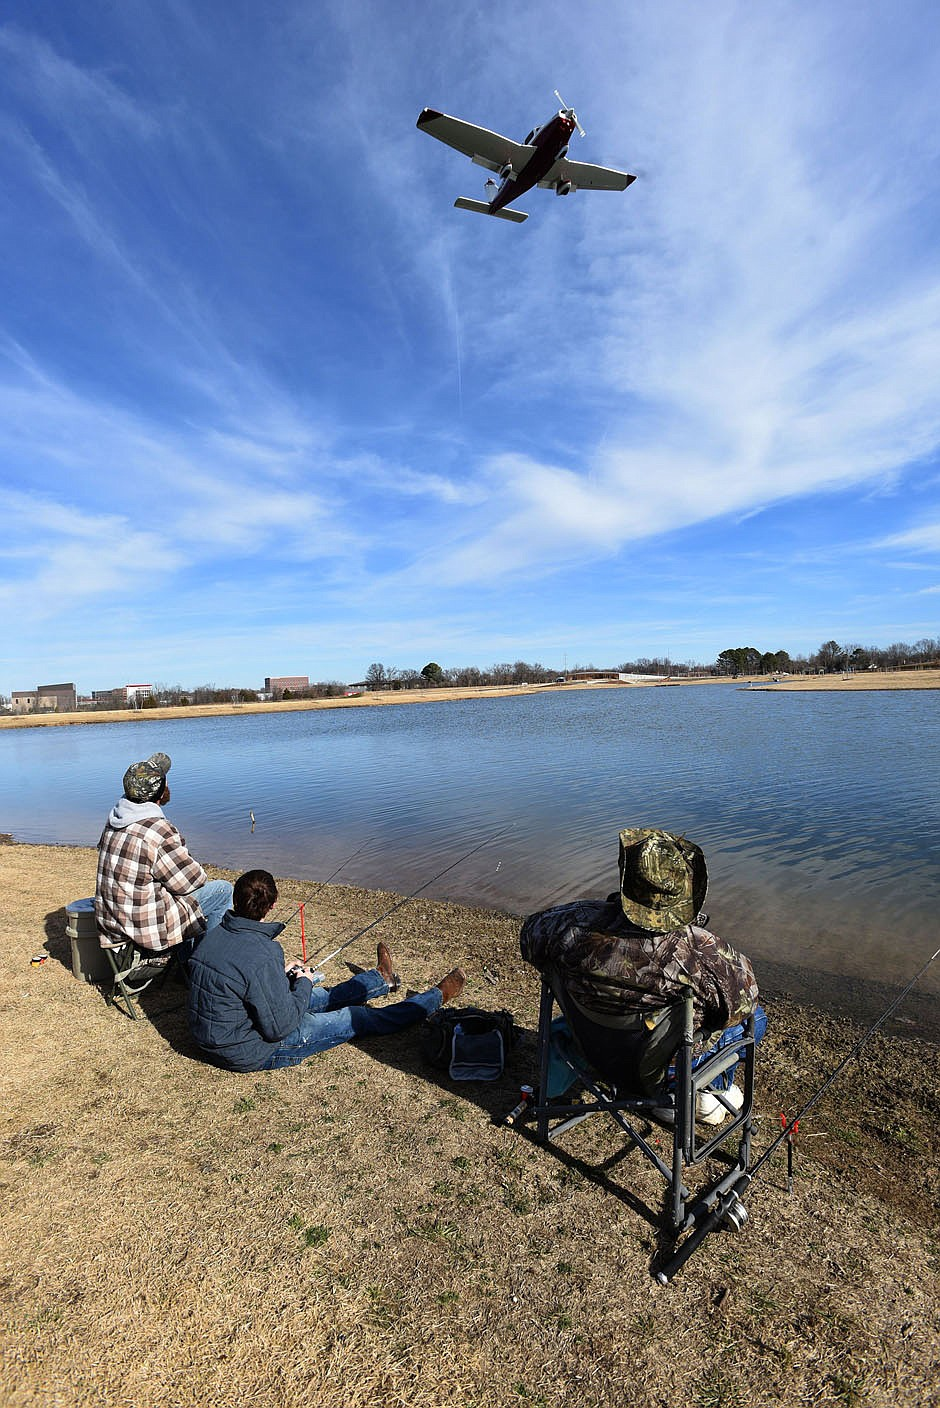 Anglers watch airplanes land while fishing for trout on Dec. 26 2020 at Lake Bentonville. The lake hugs the runway on the north side of the airport. (NWA Democrat-Gazette/Flip Putthoff)